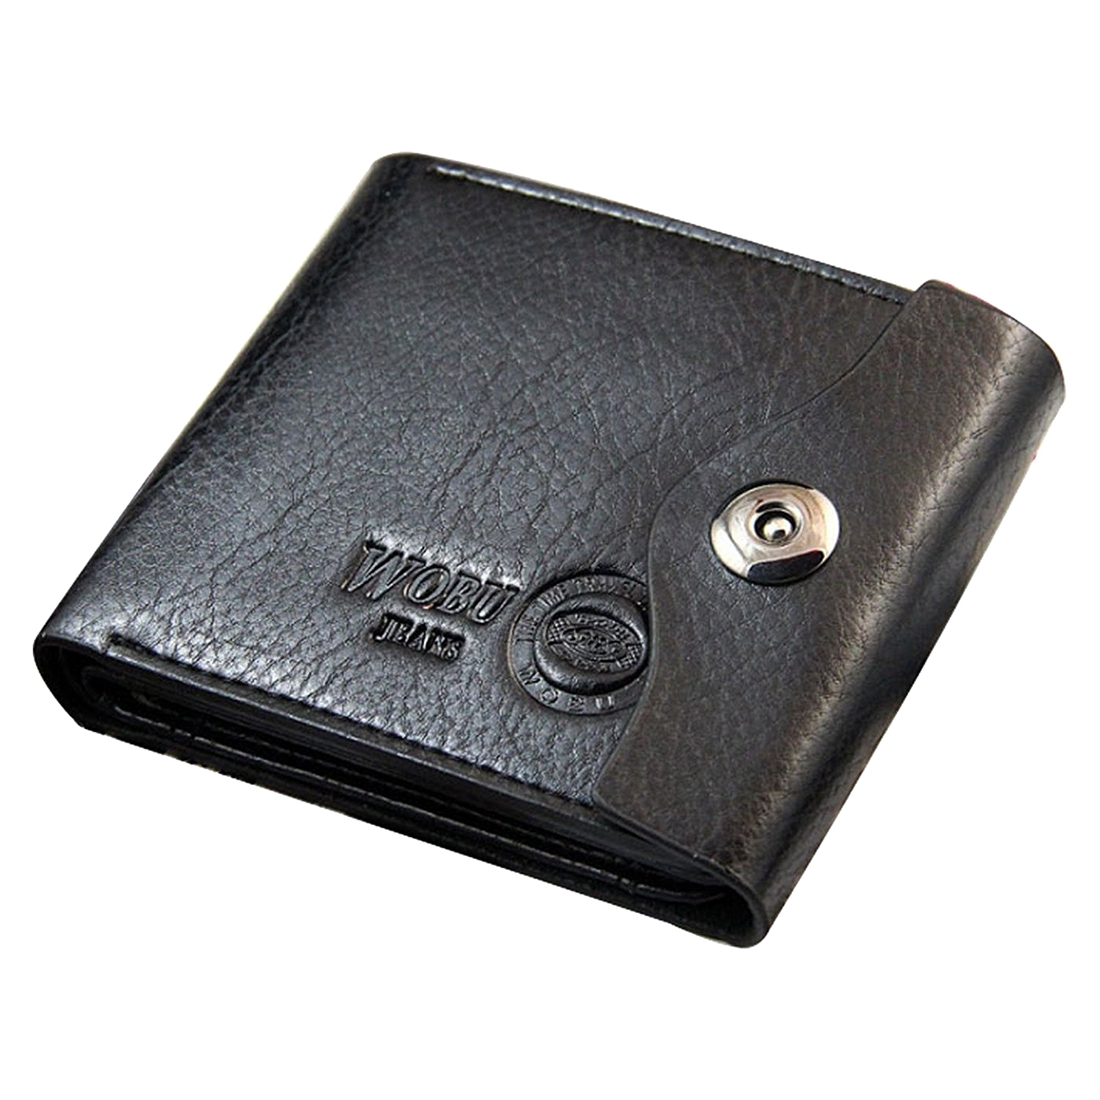 2X WOBU High Quality Mens Leather Wallet with Credit Card Holder,Purse (Black) star wars purse high quality leather